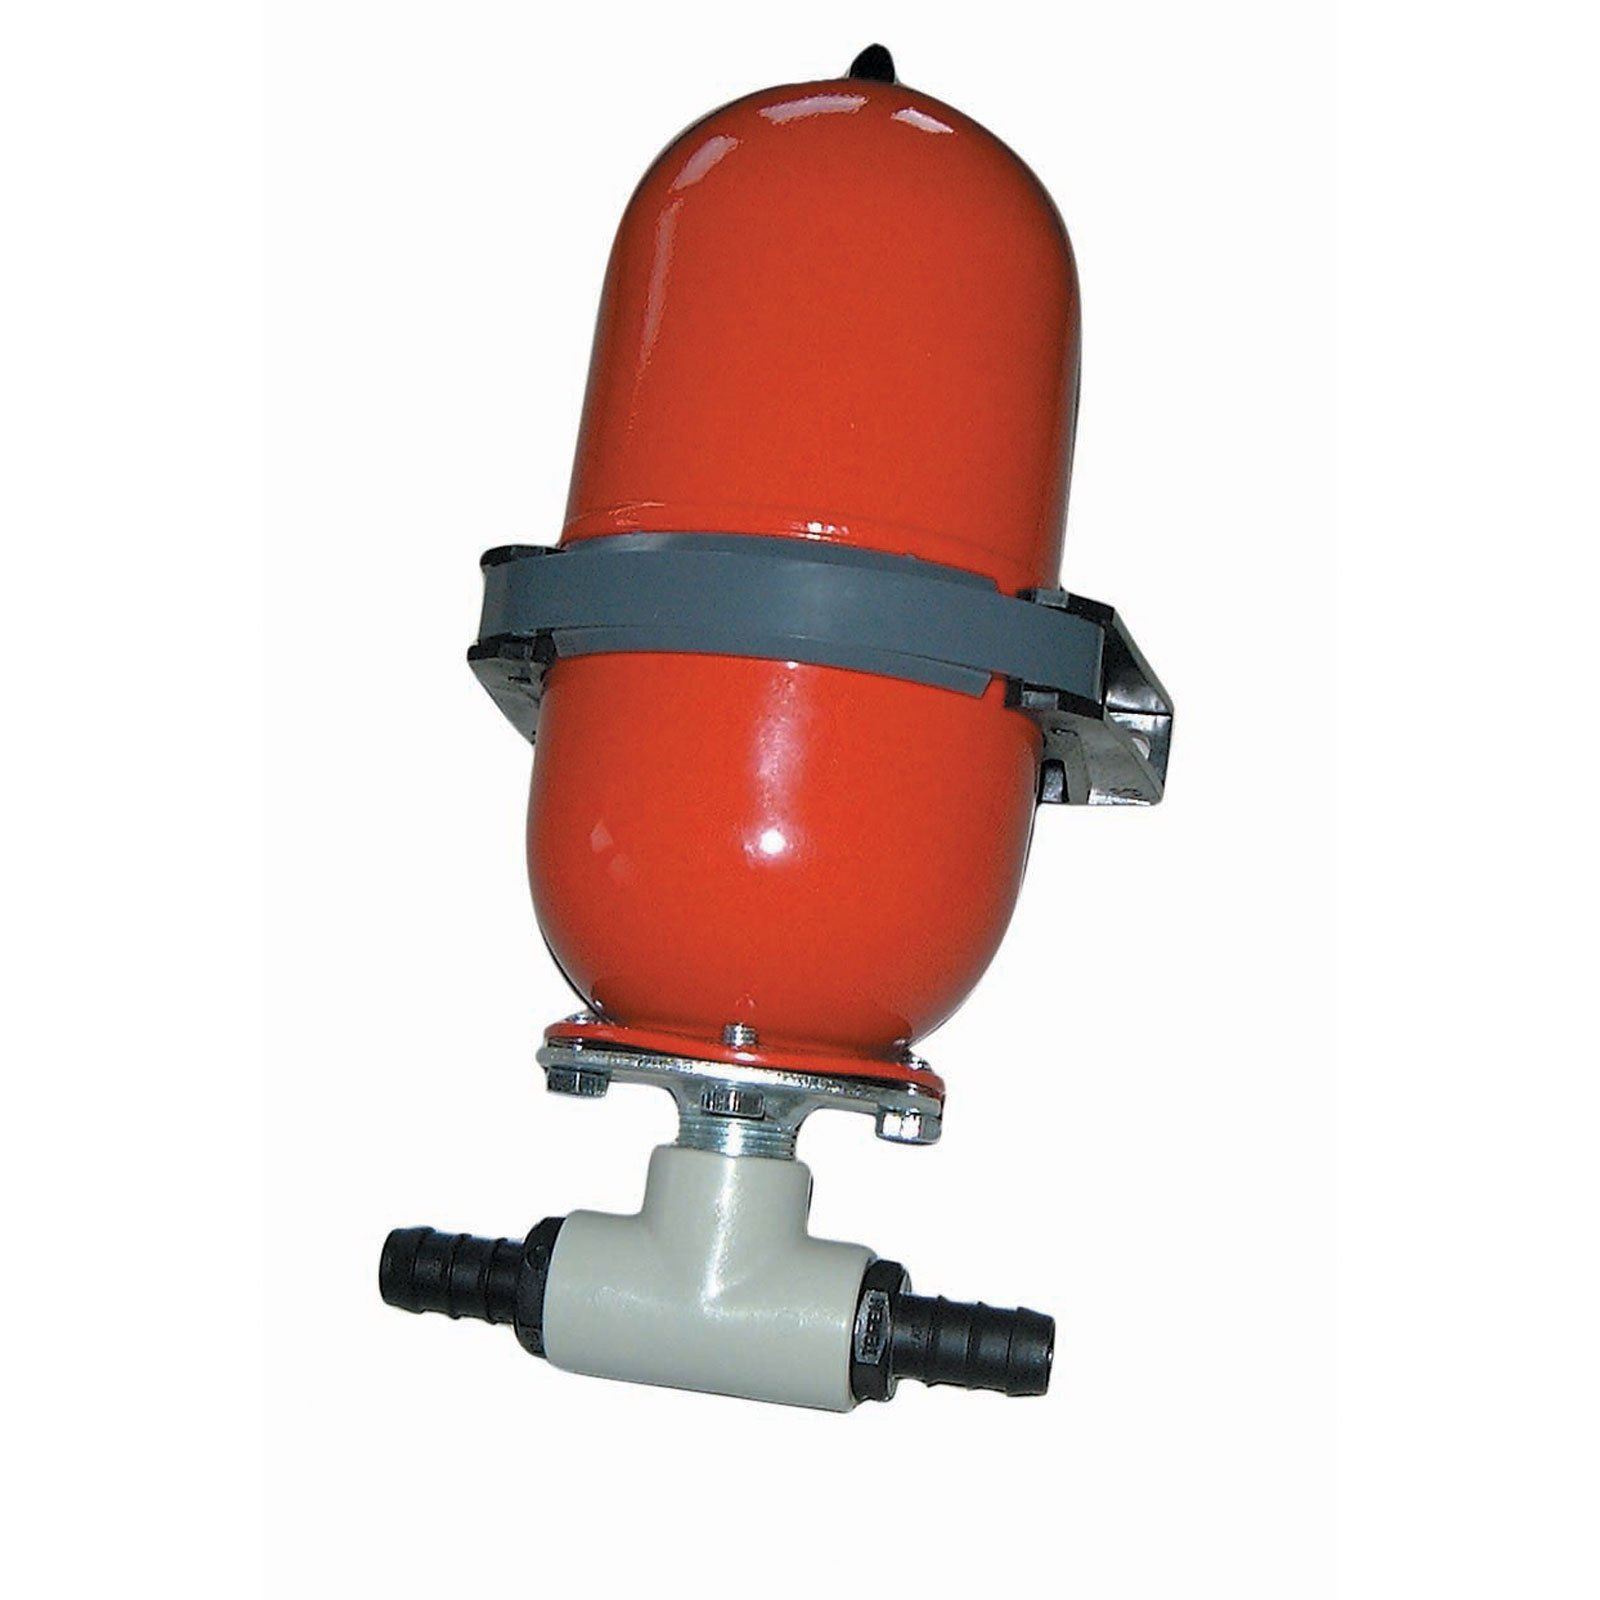 Johnson Pumps 09-46839-01 Accumulator Tank with 1/2-Inch Hose Barb by Johnson Pumps